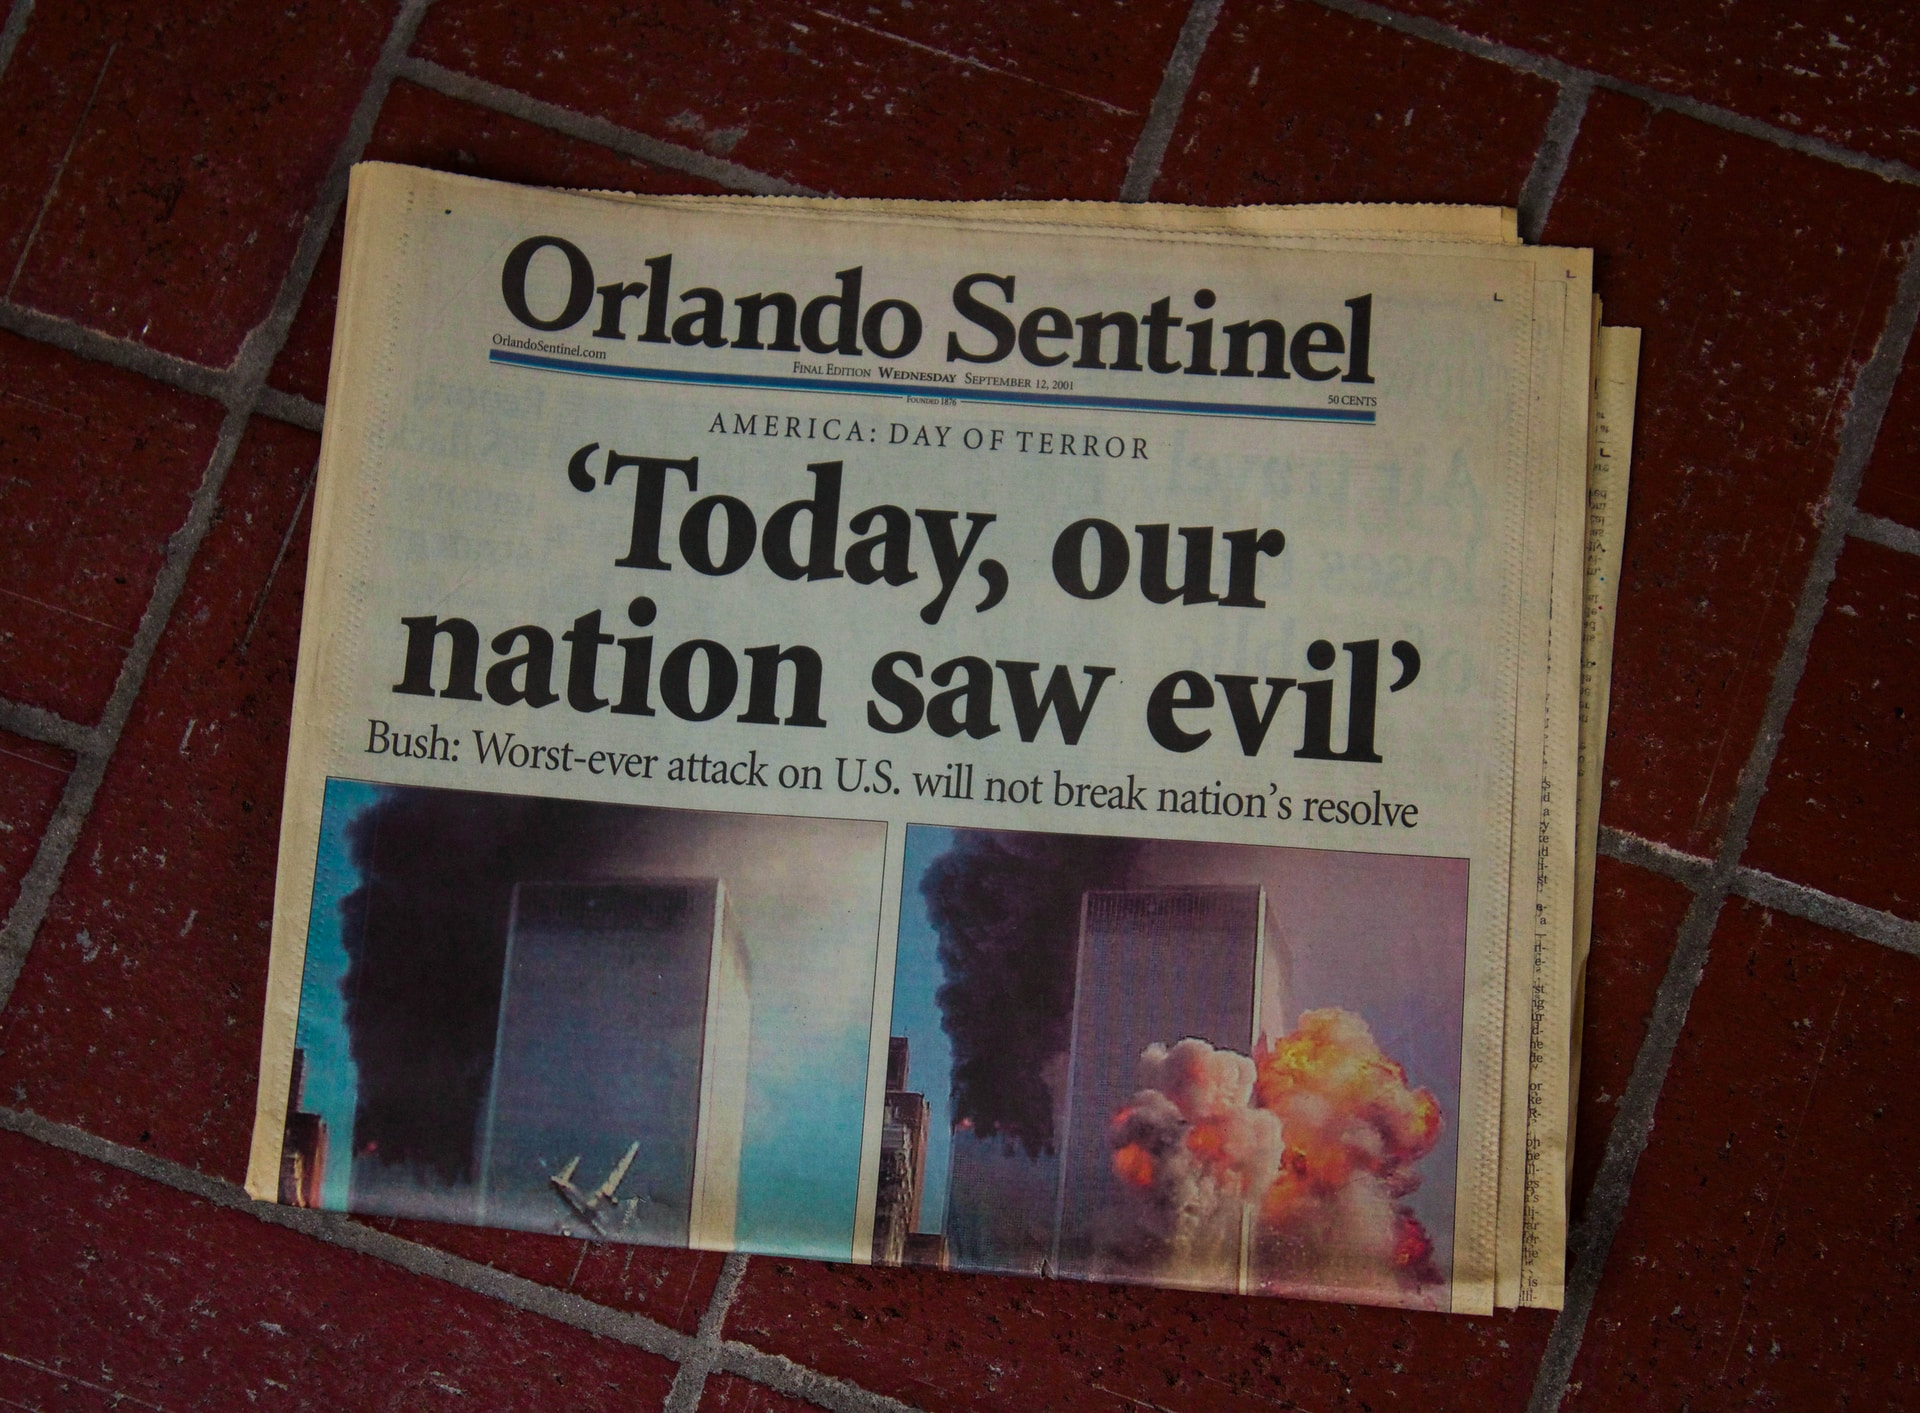 Orlando Sentinel Today, our nation saw evil newspaper